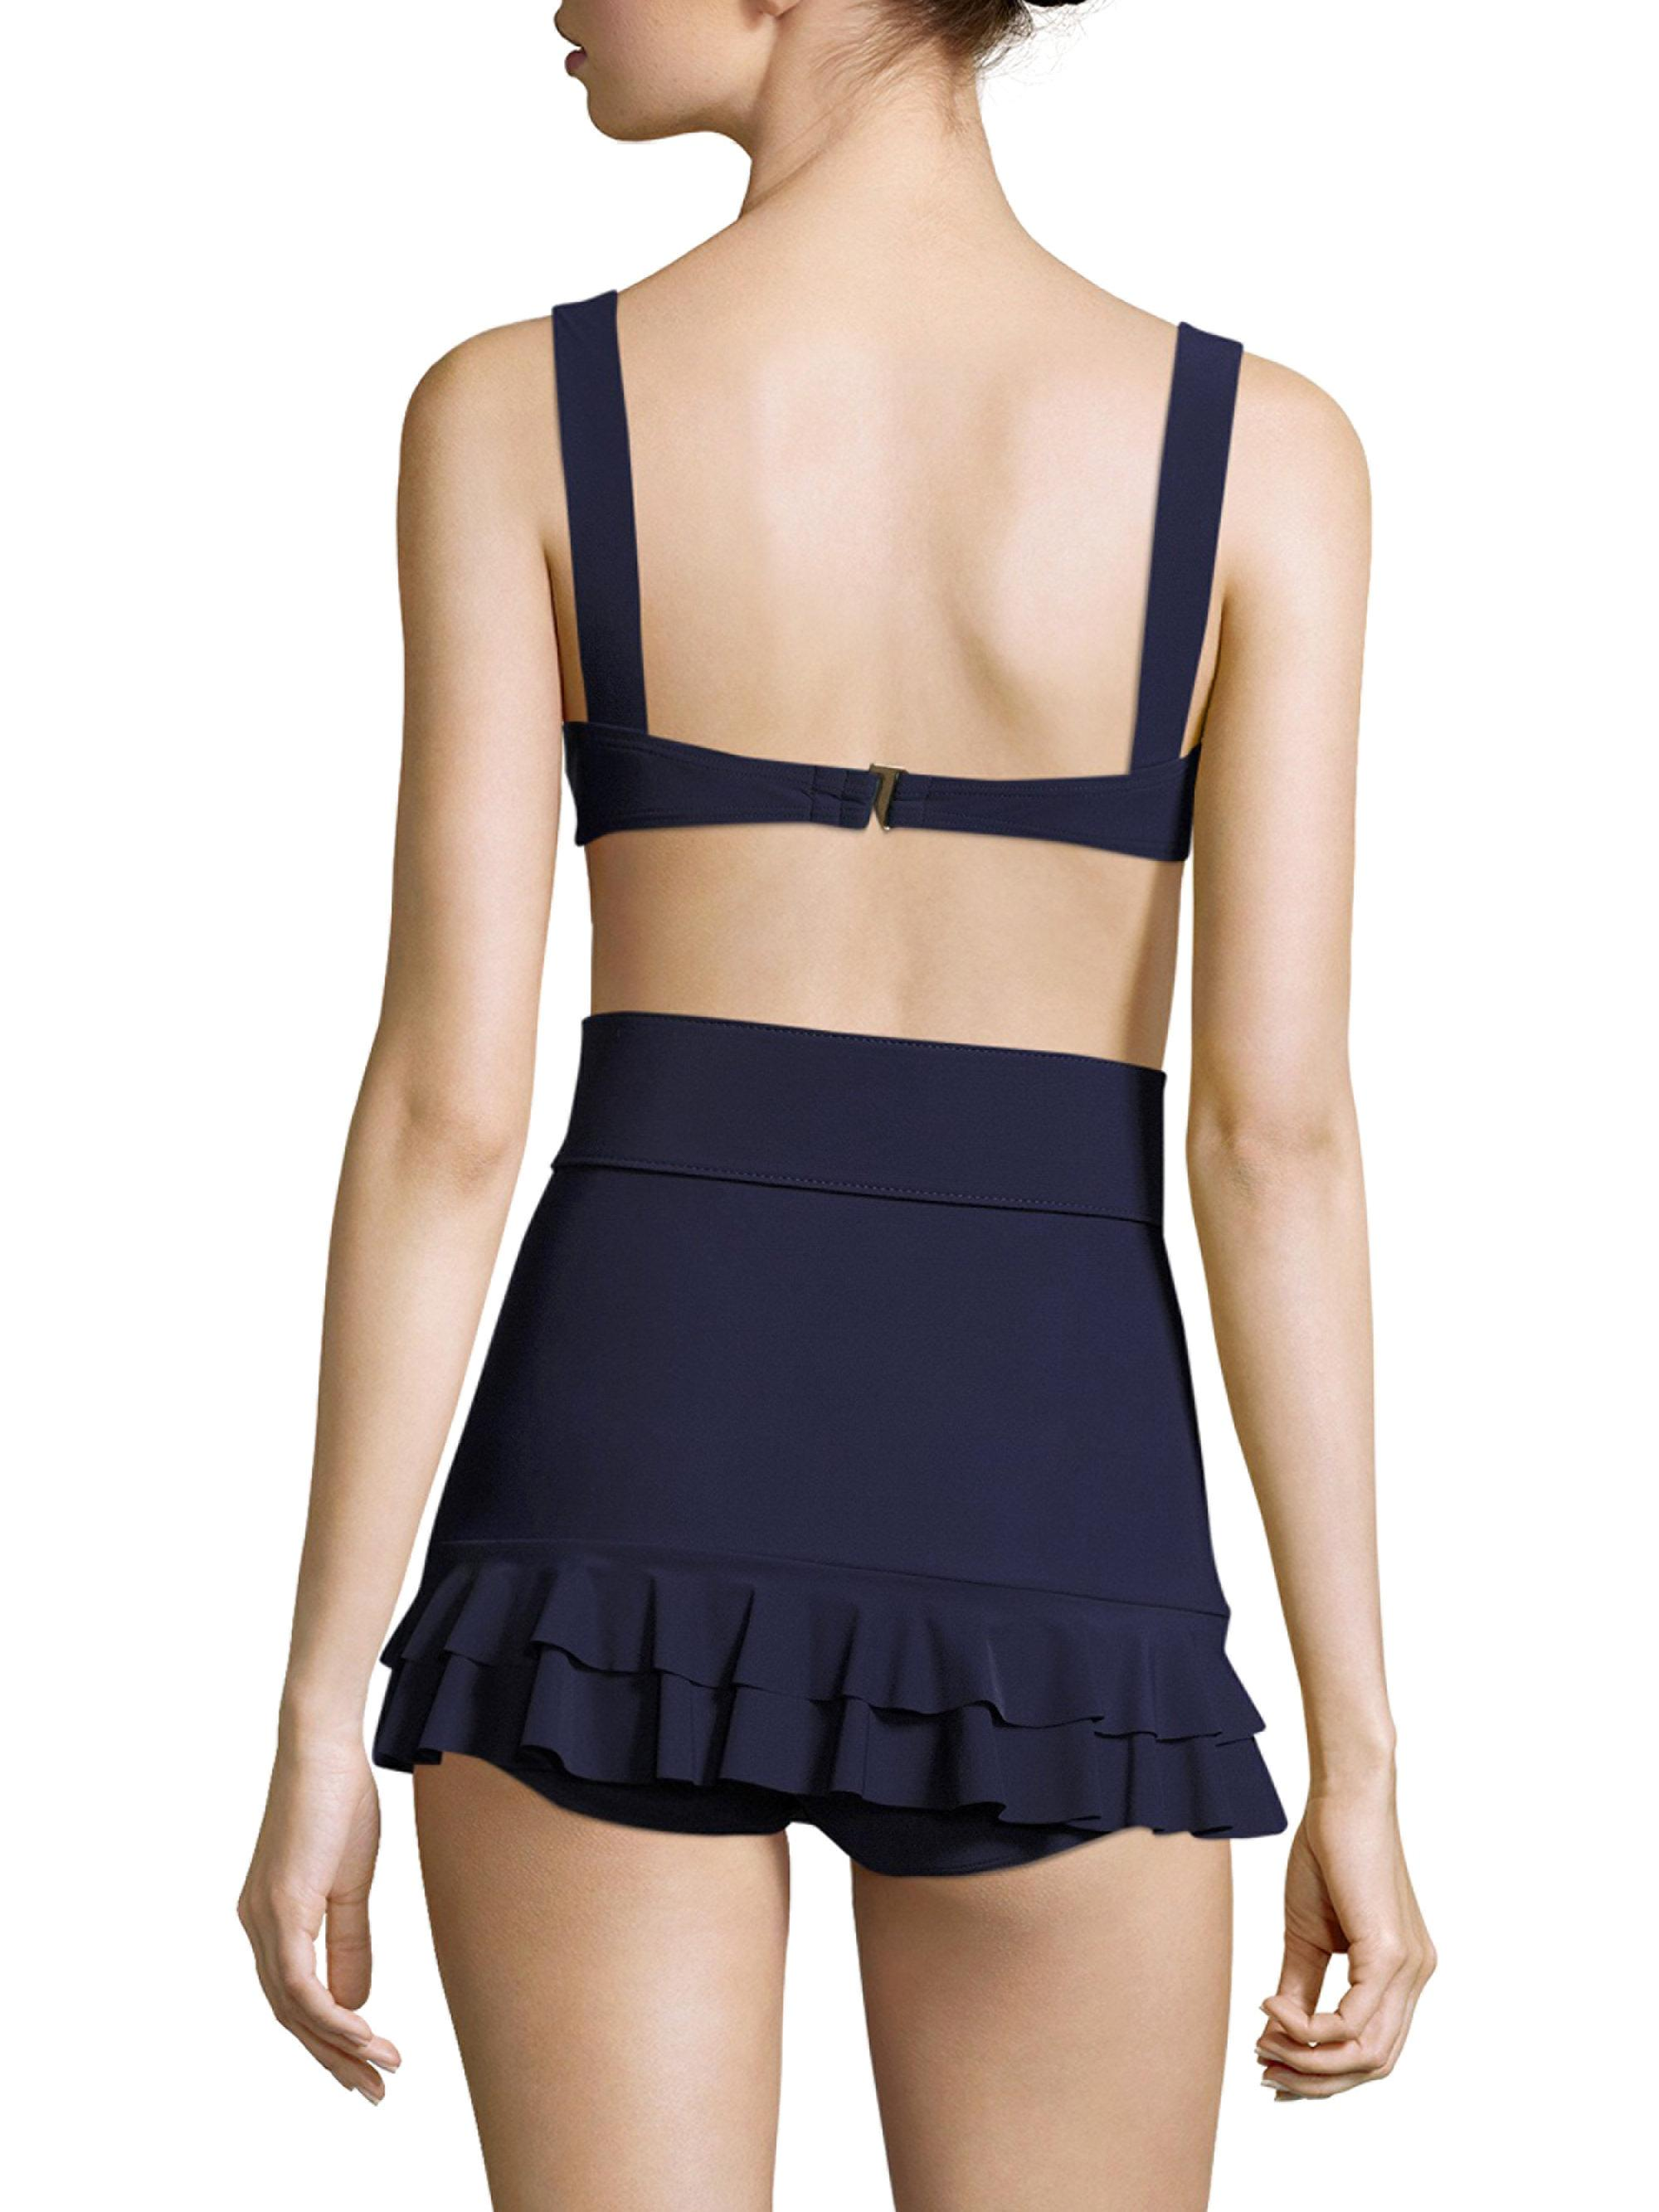 faf476bc5d Michael Kors Two-piece Belted Bikini in Blue - Lyst